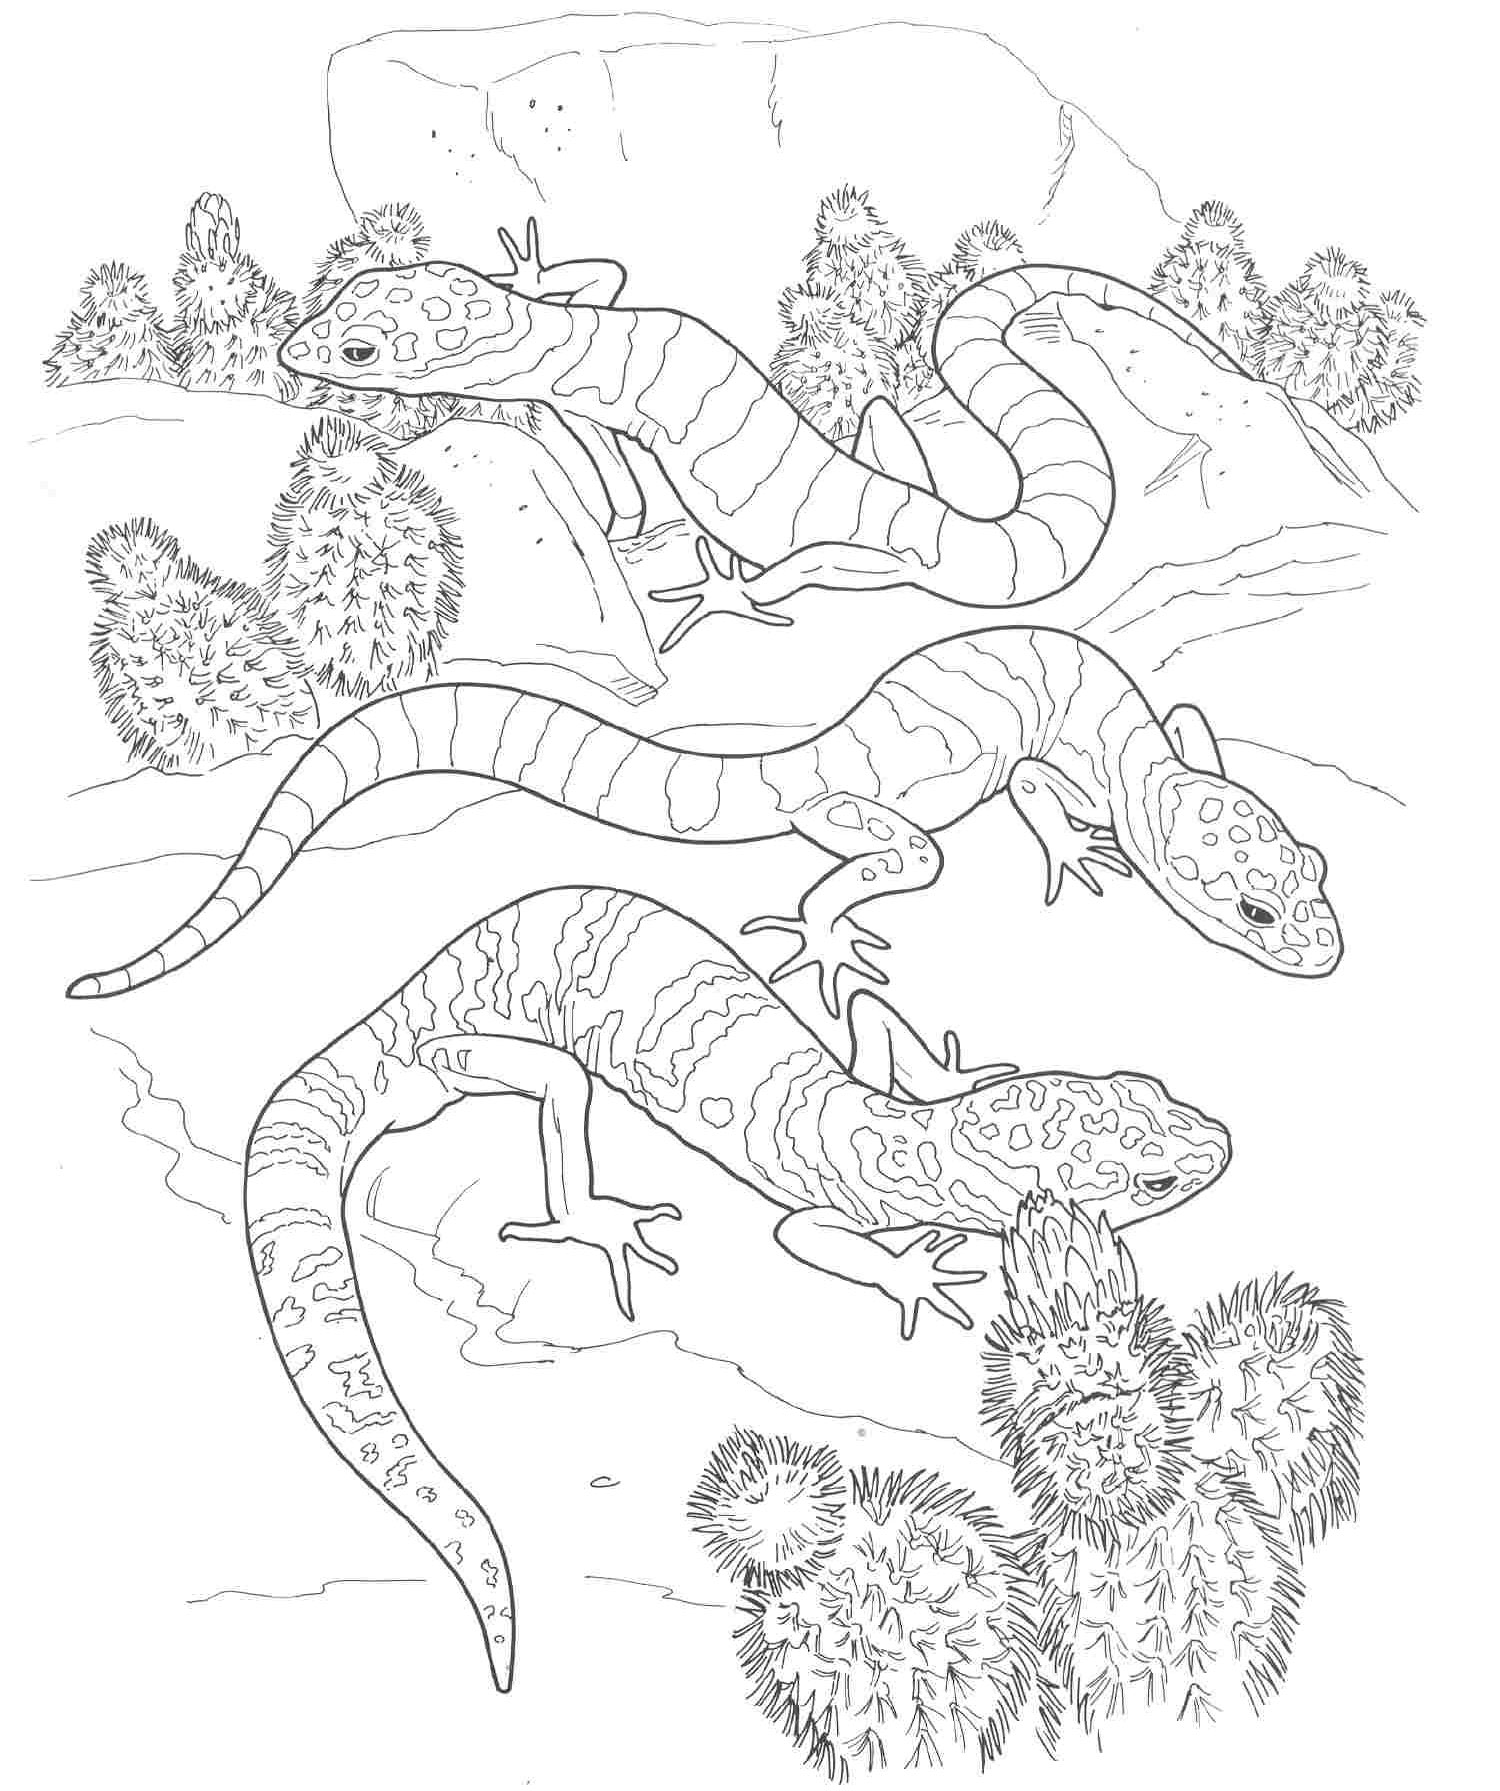 Lizards coloring pages to print - Free Printable Lizard Coloring Pages For Kids